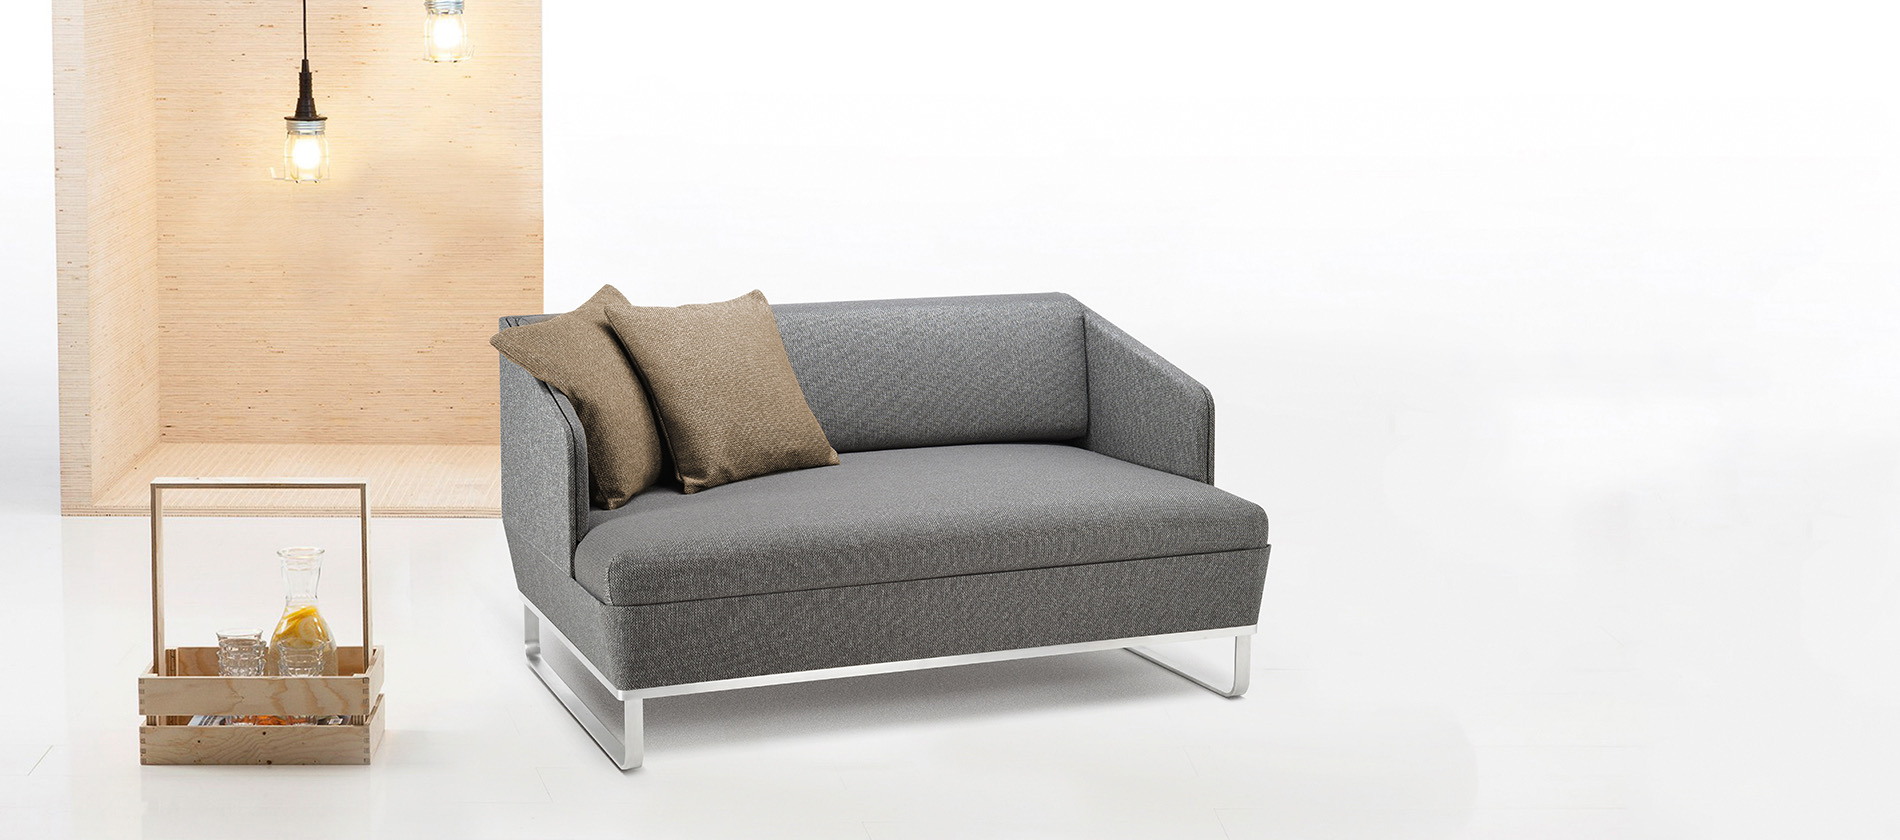 Schlafsofa Duetto Deluxe Swiss Plus